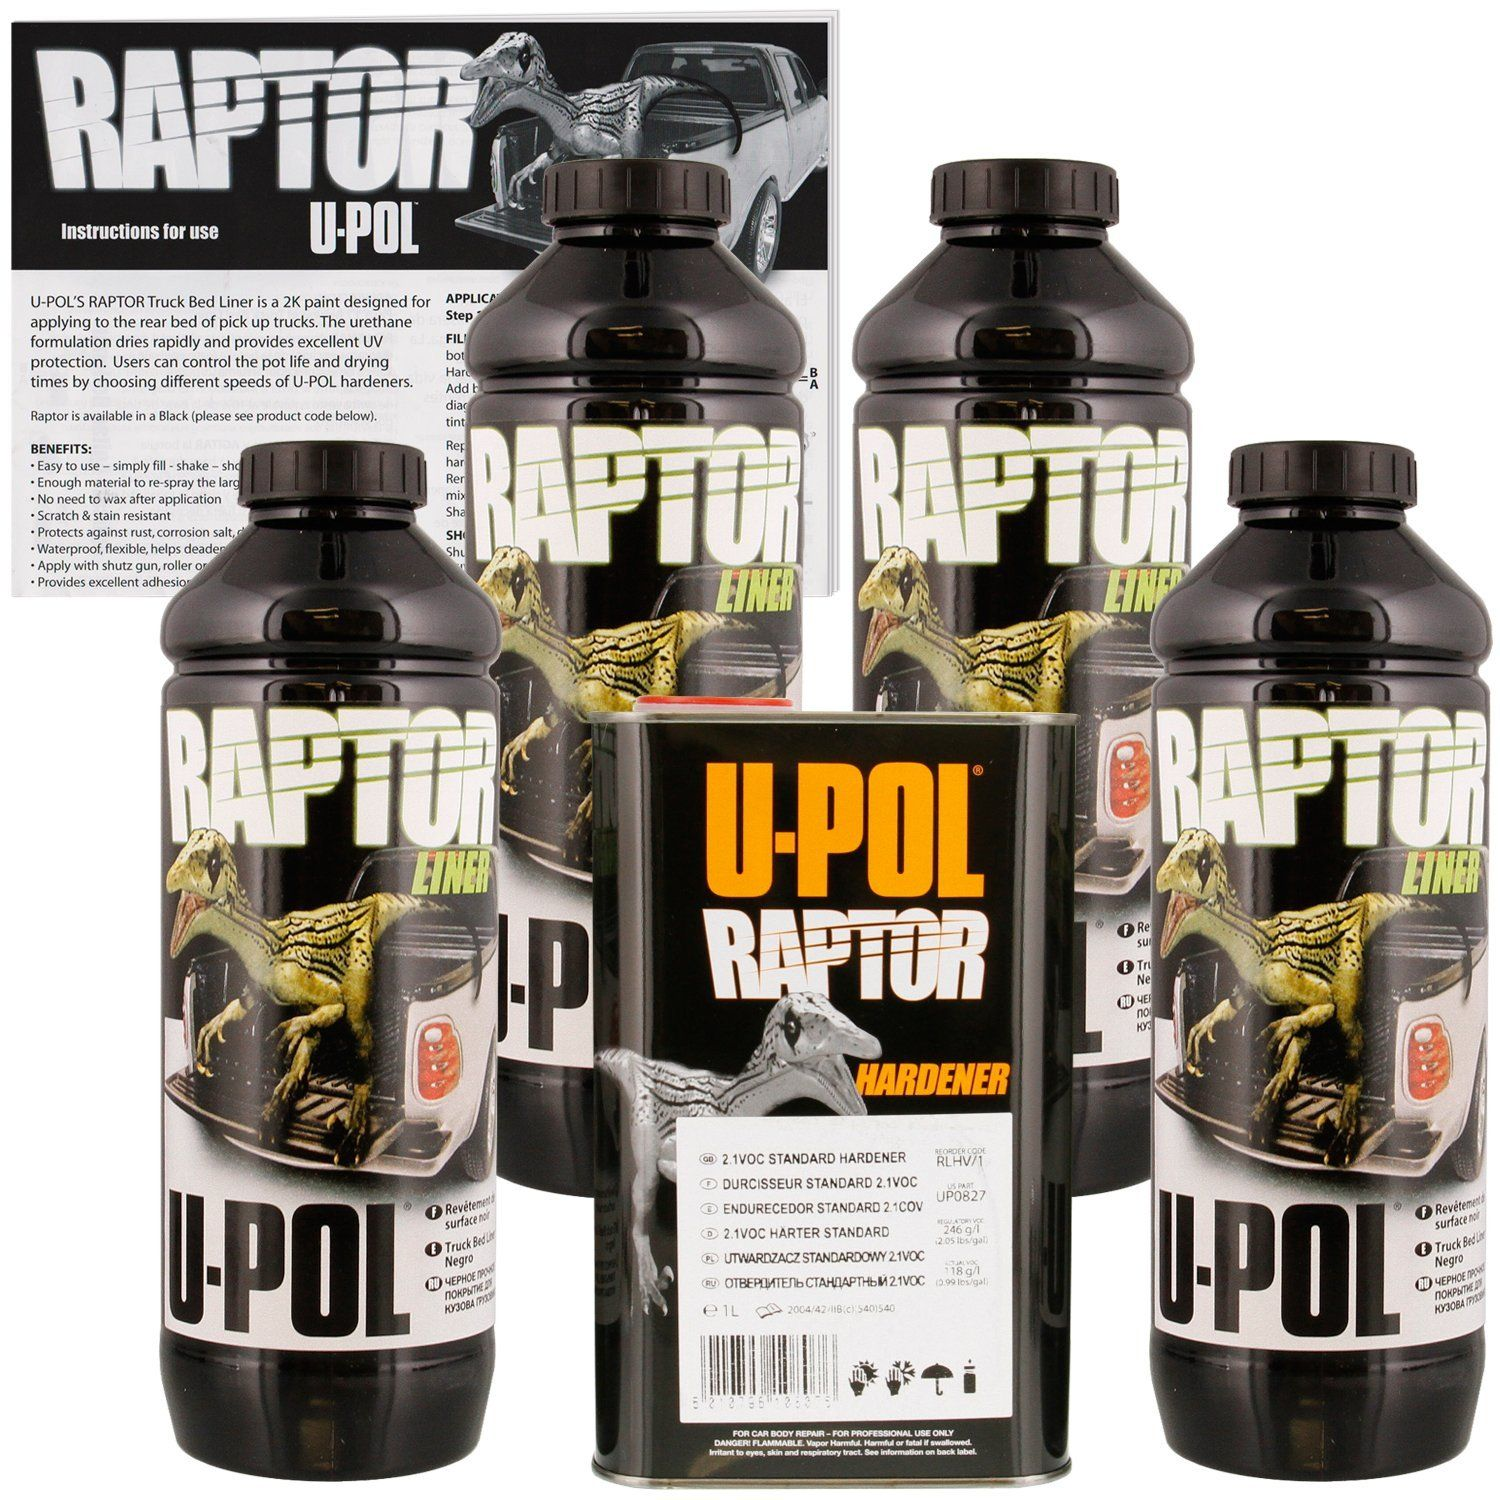 UPOL Raptor Black Bed Liner & Texture Coating, 4 Liters